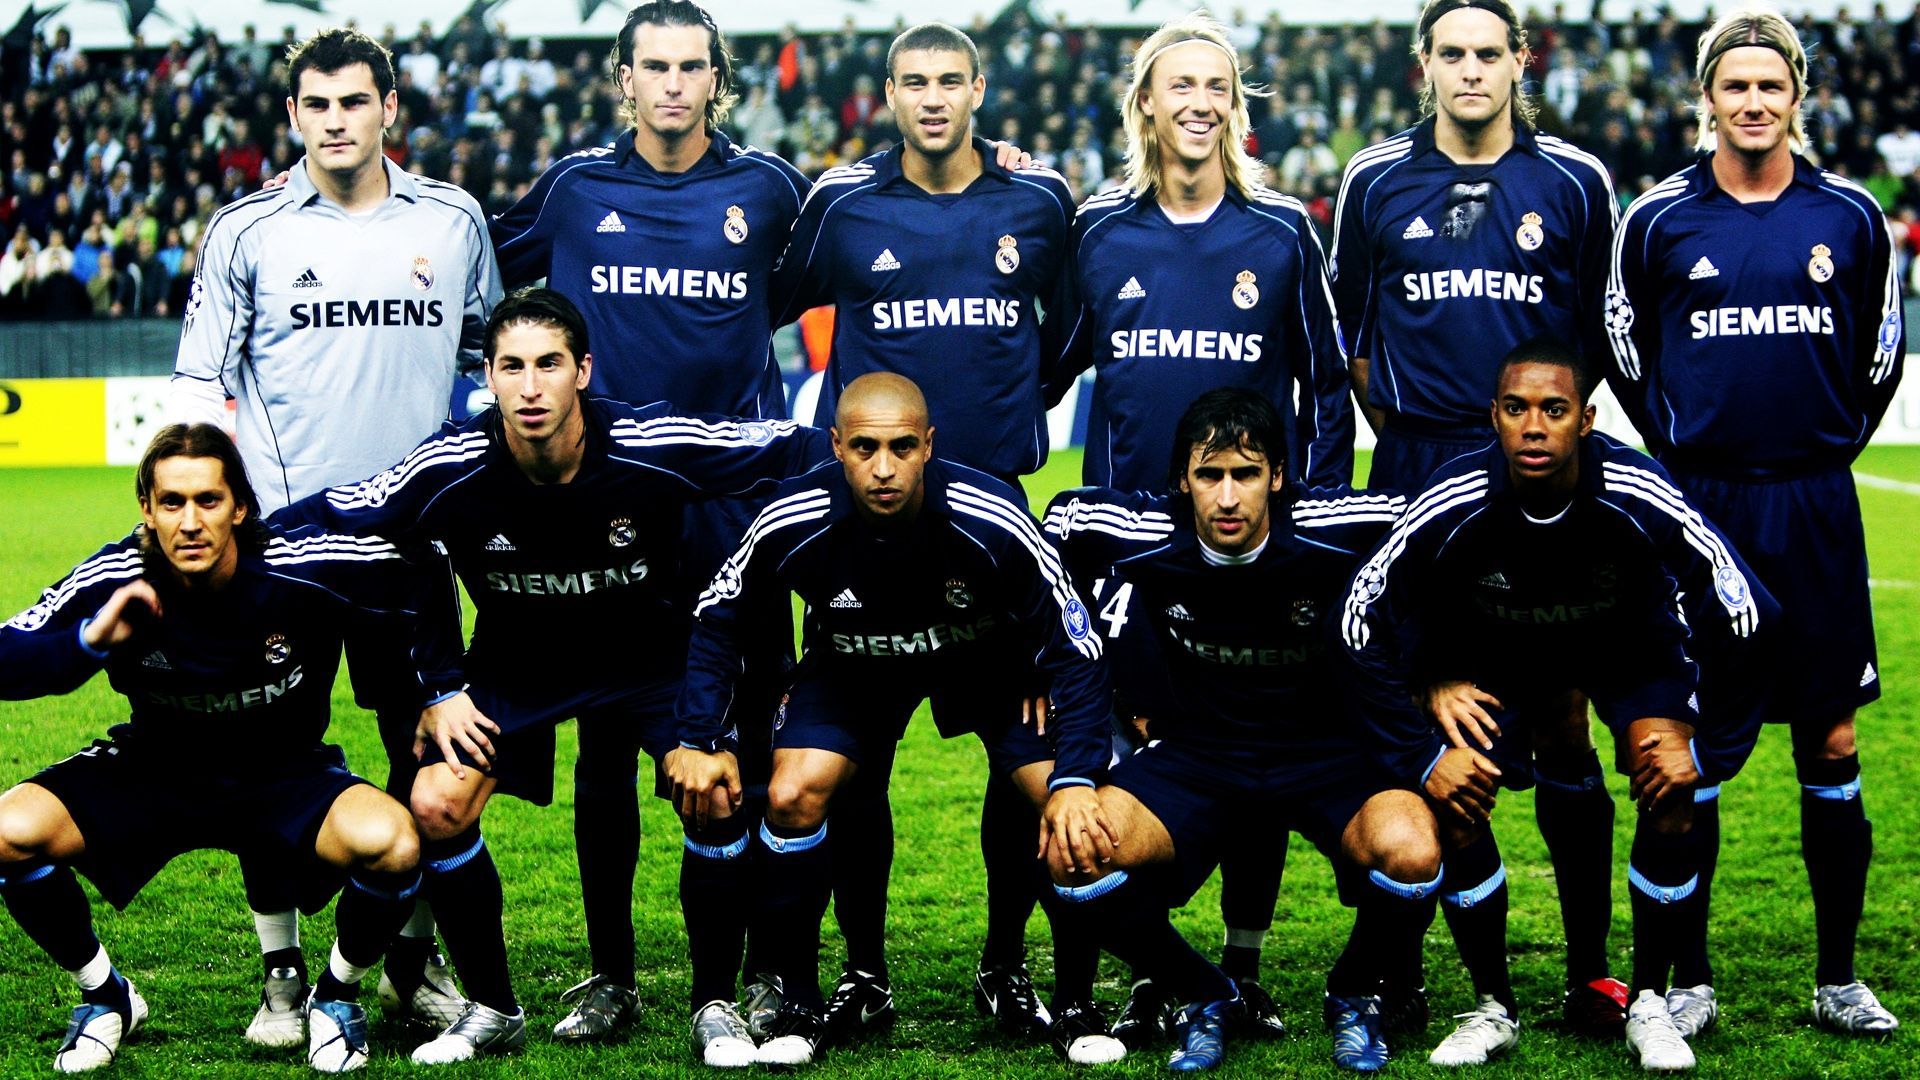 Real Madrid Siemens Hd Wallpaper